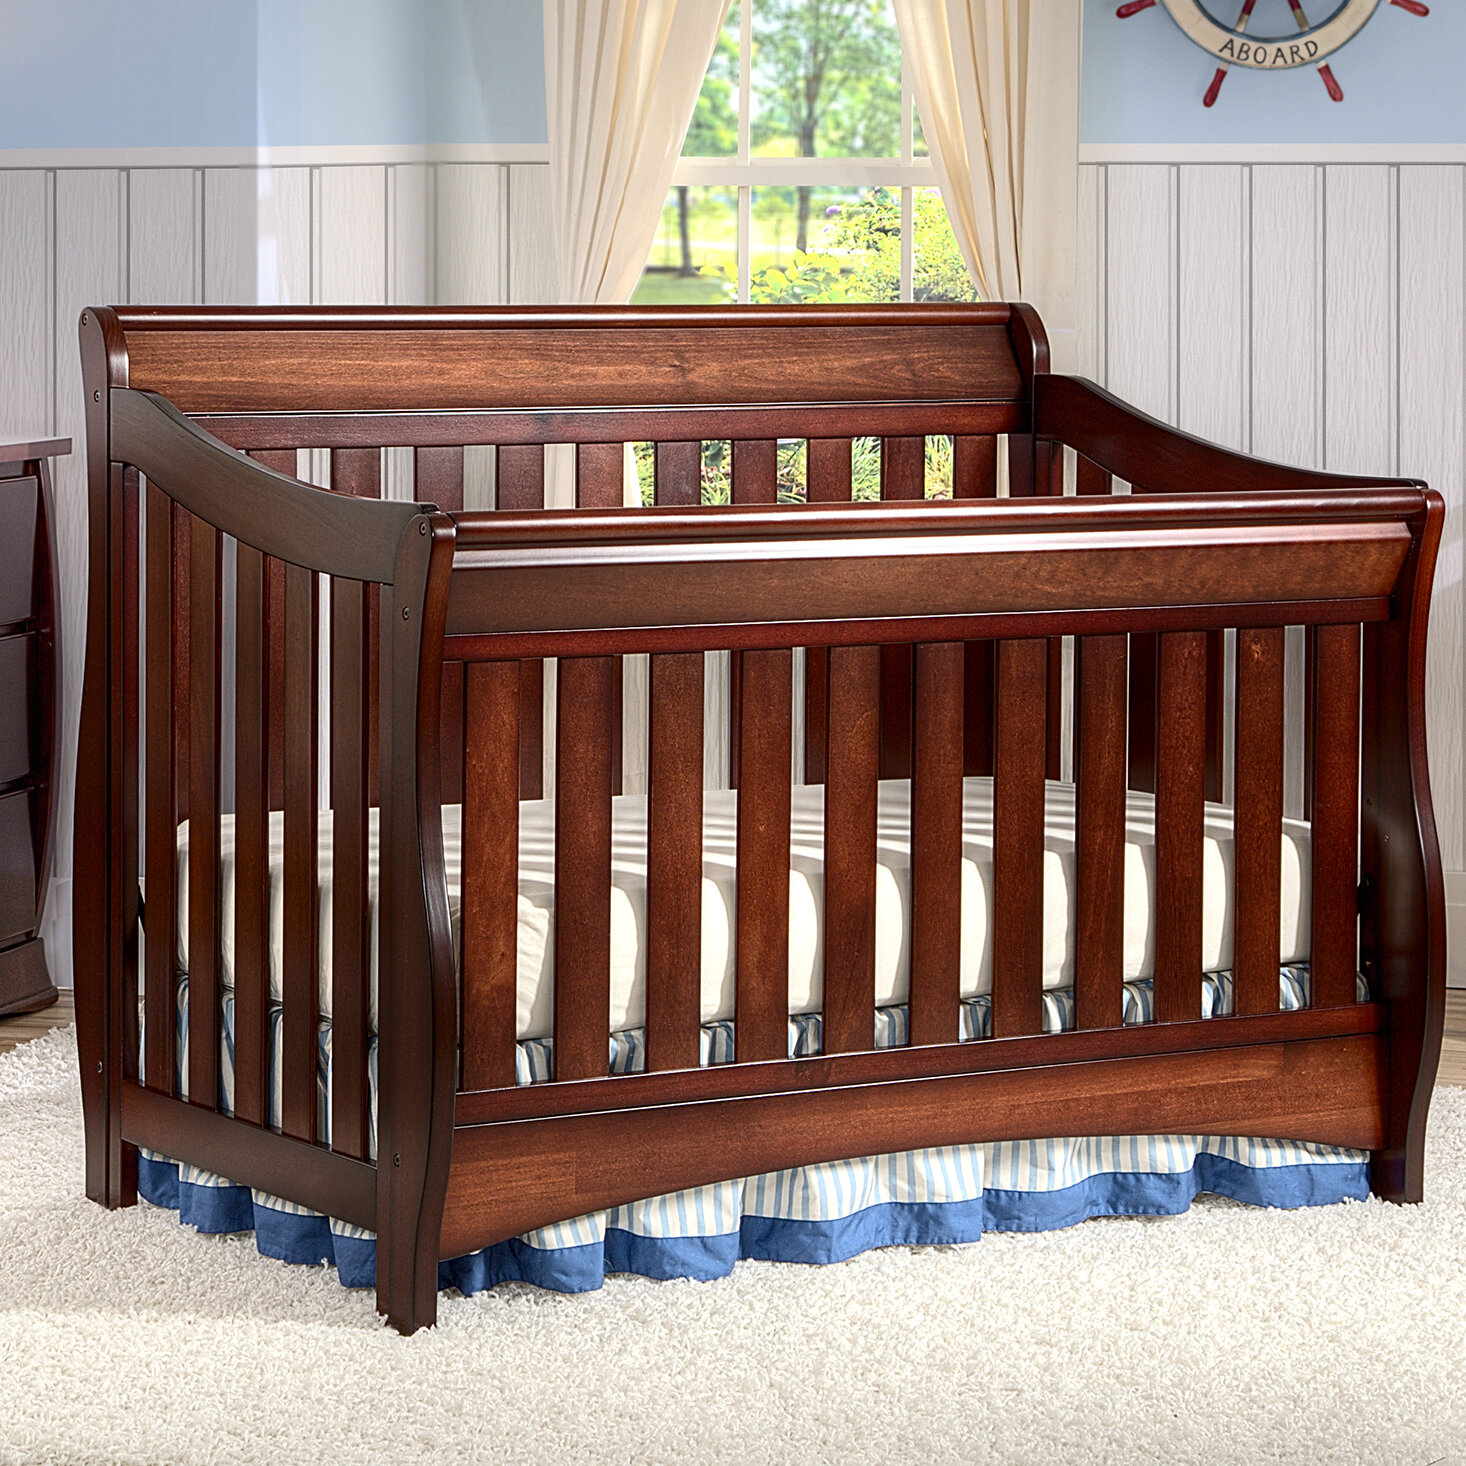 dp changer cribs set baby com and crib sorelle tuscany espresso amazon in convertible